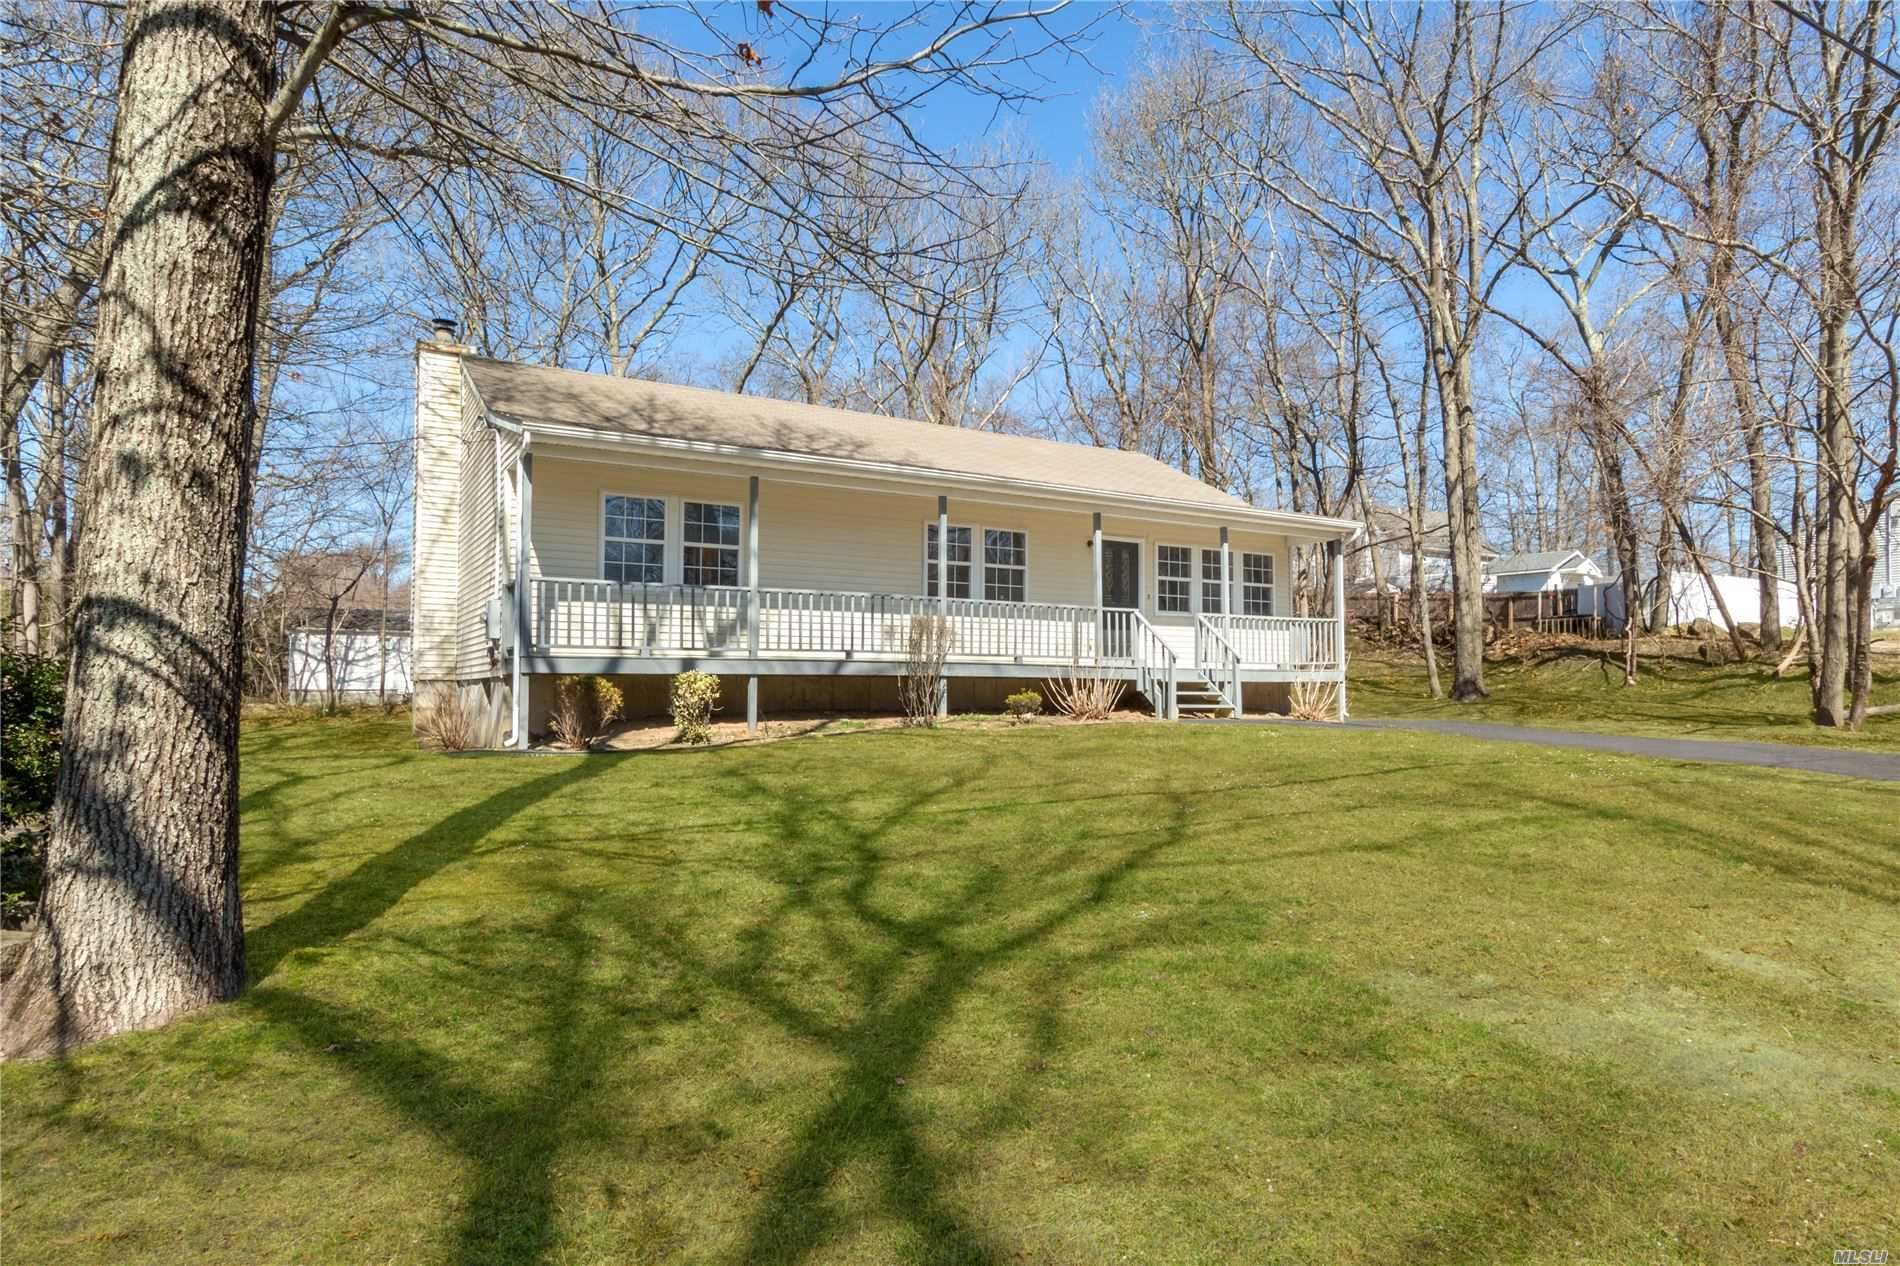 111 Maple Lane, Medford, NY 11763 - MLS#: 3208381